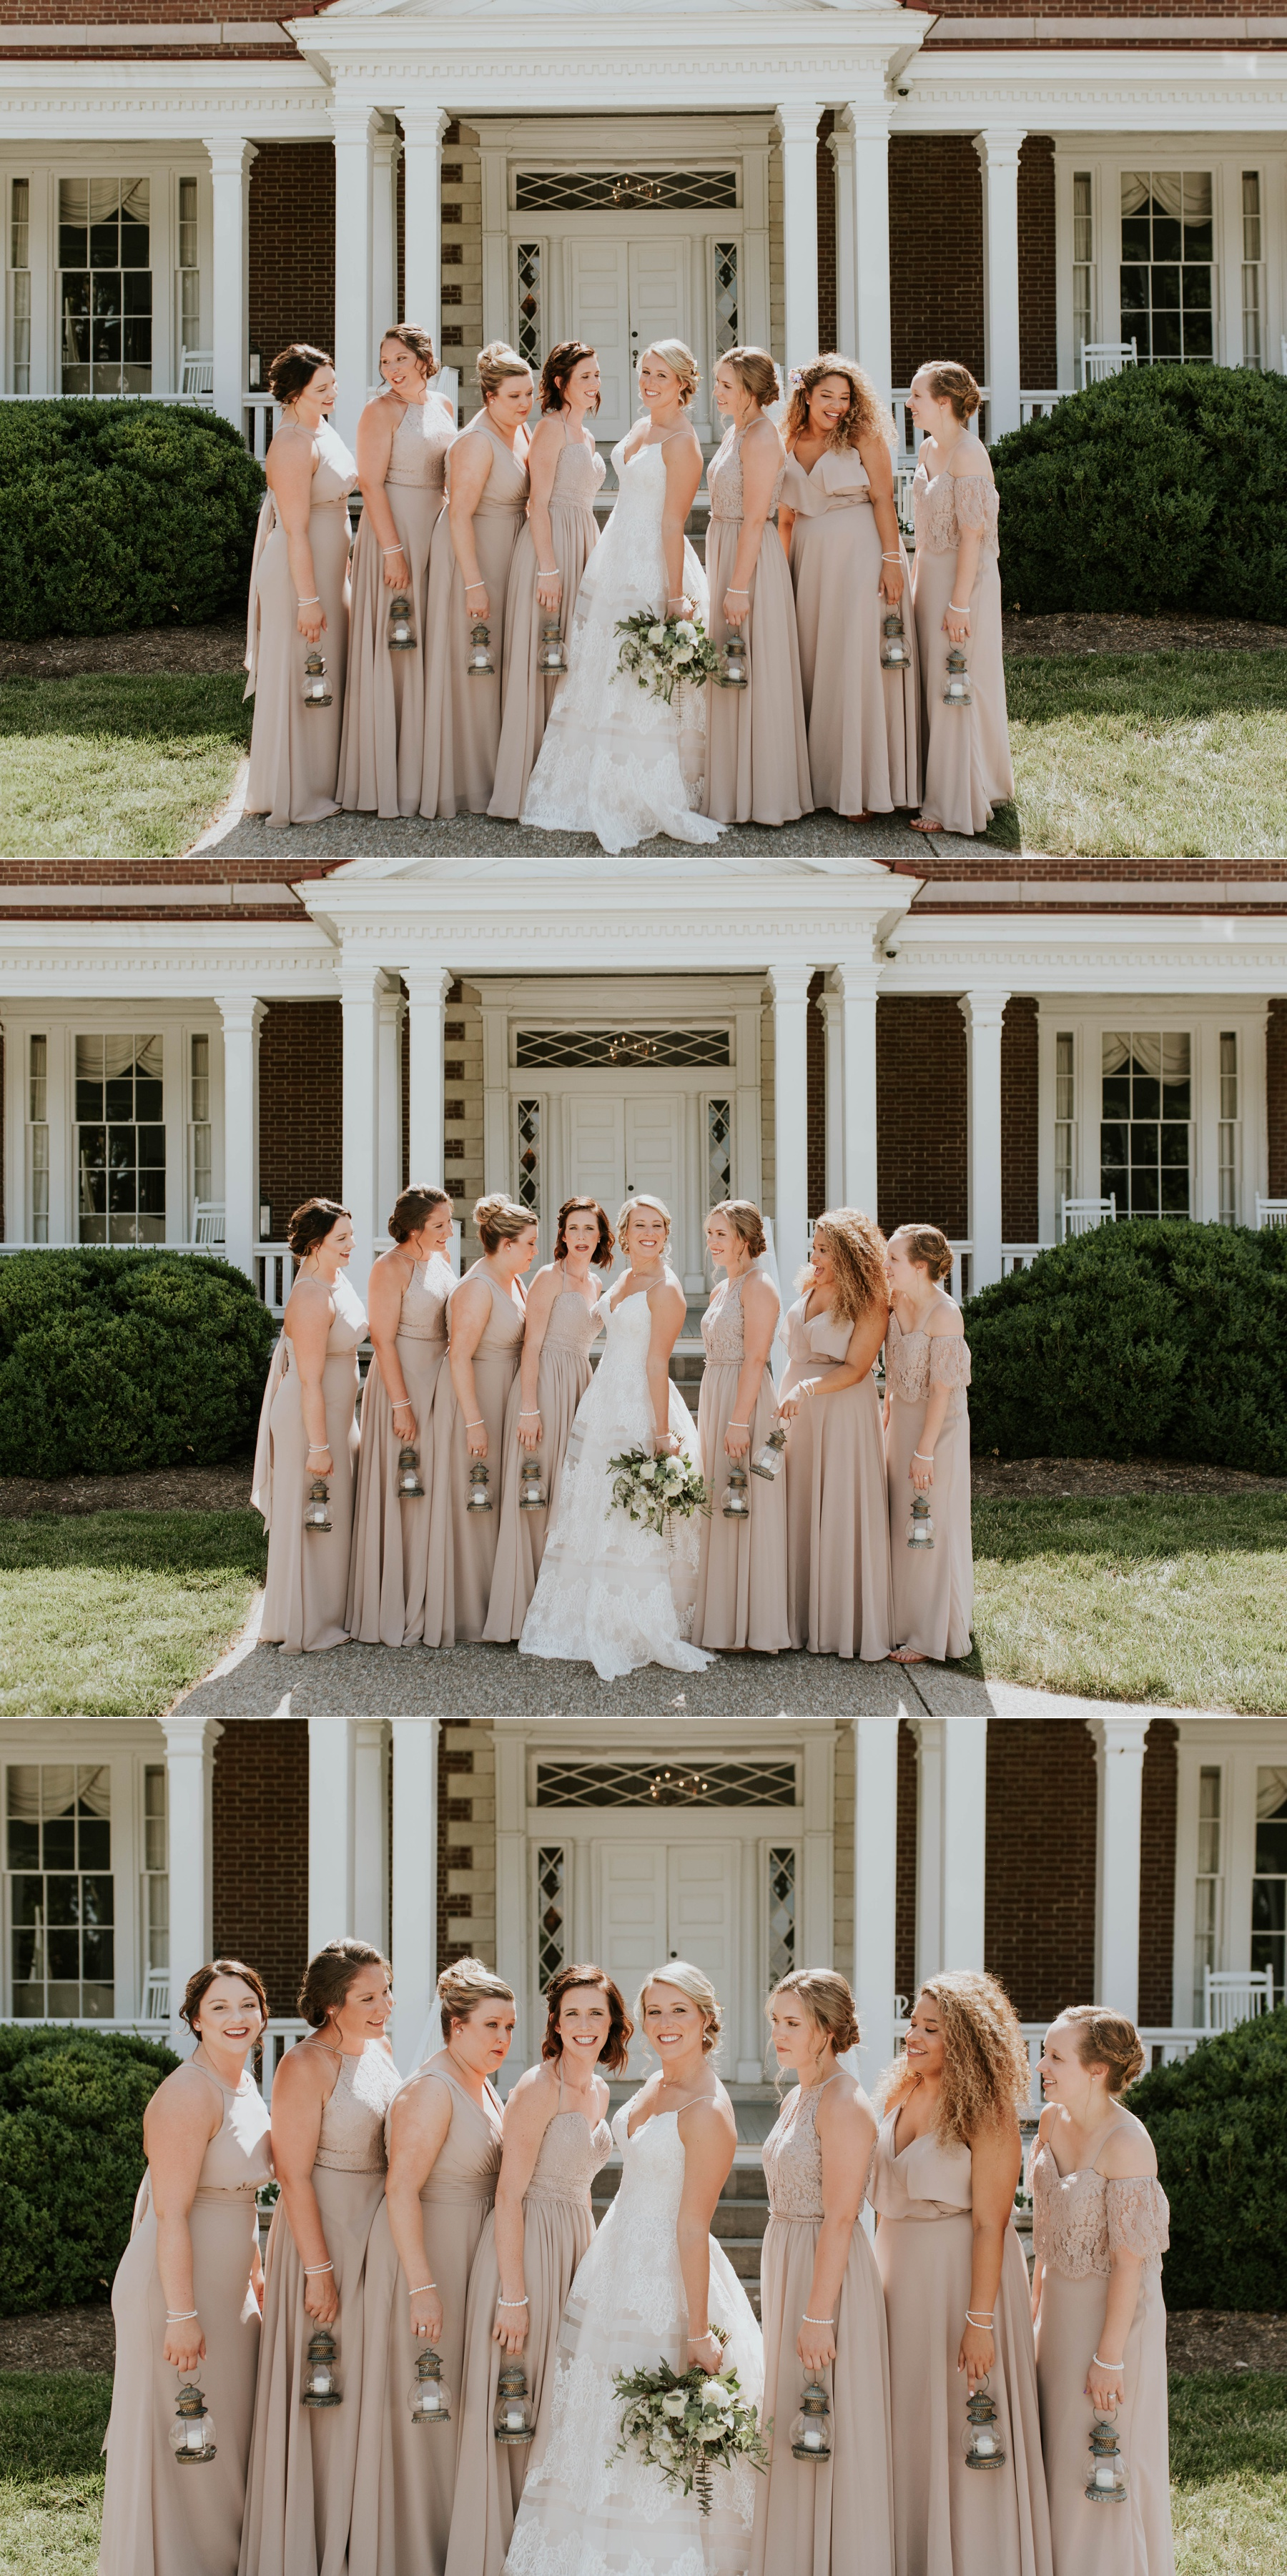 RavenswoodMansionWeddingThroughVictoriasLens12.jpg